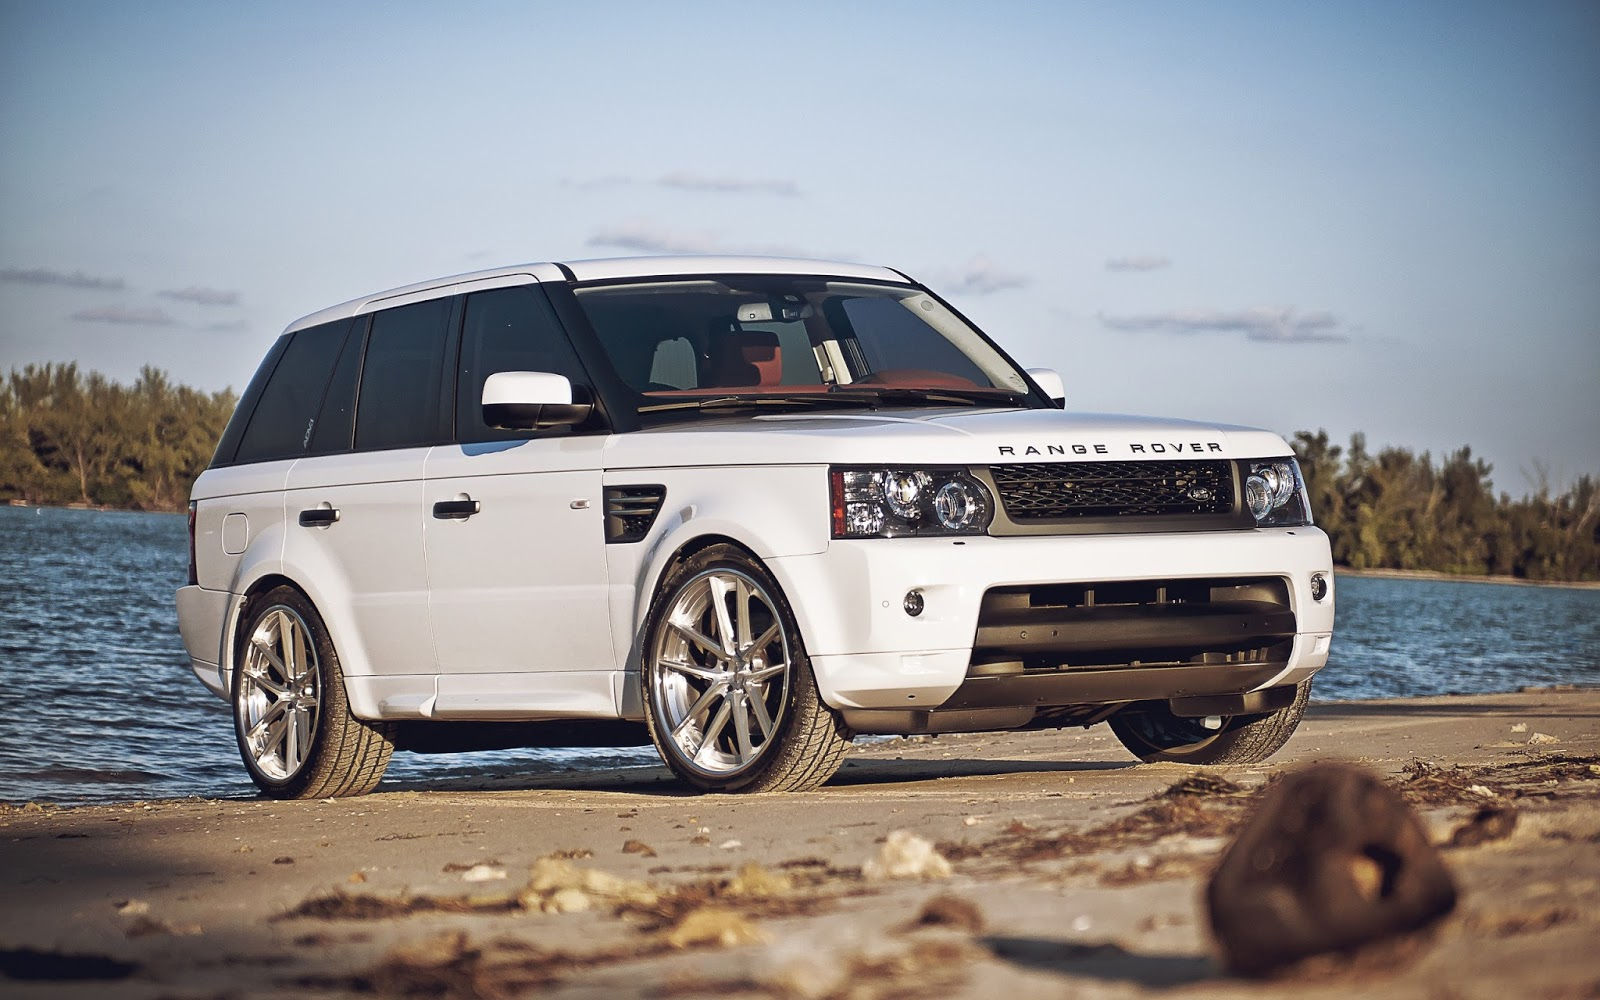 Range Rover Car Wallpapers